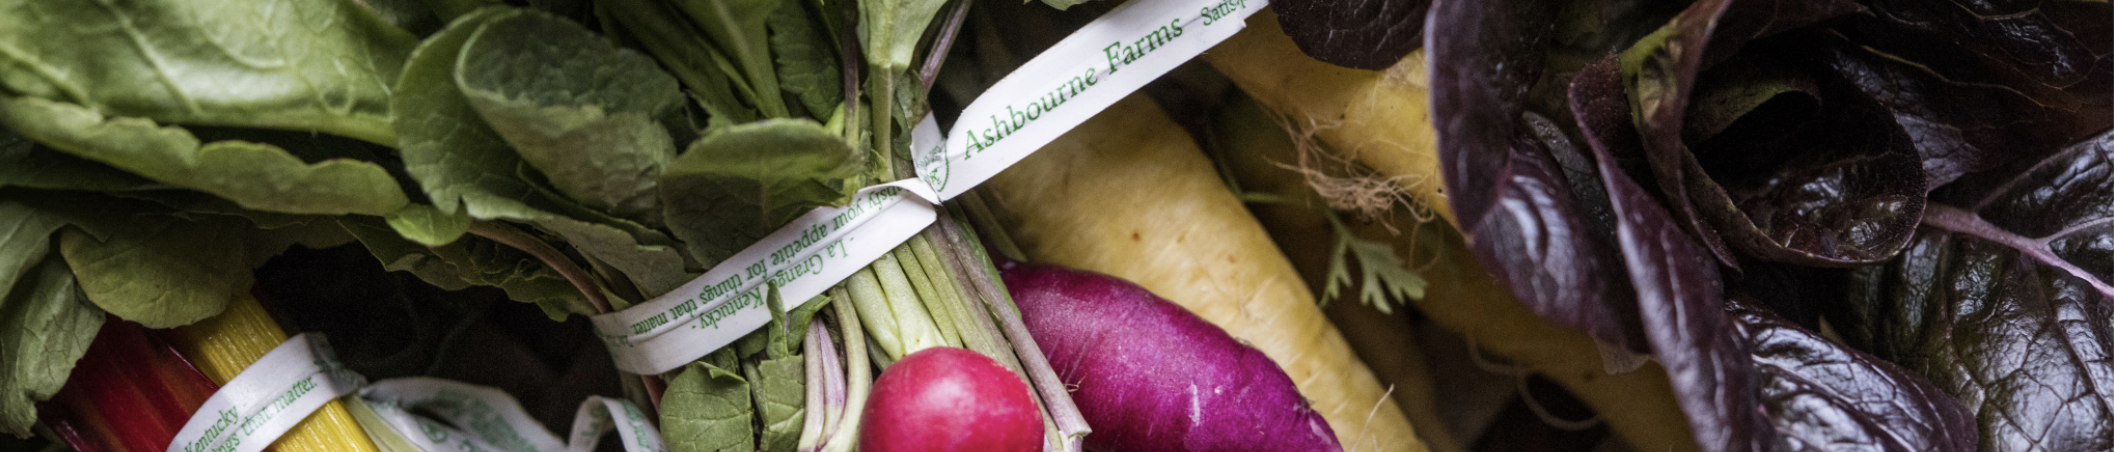 Farm Happenings at Ashbourne Farms